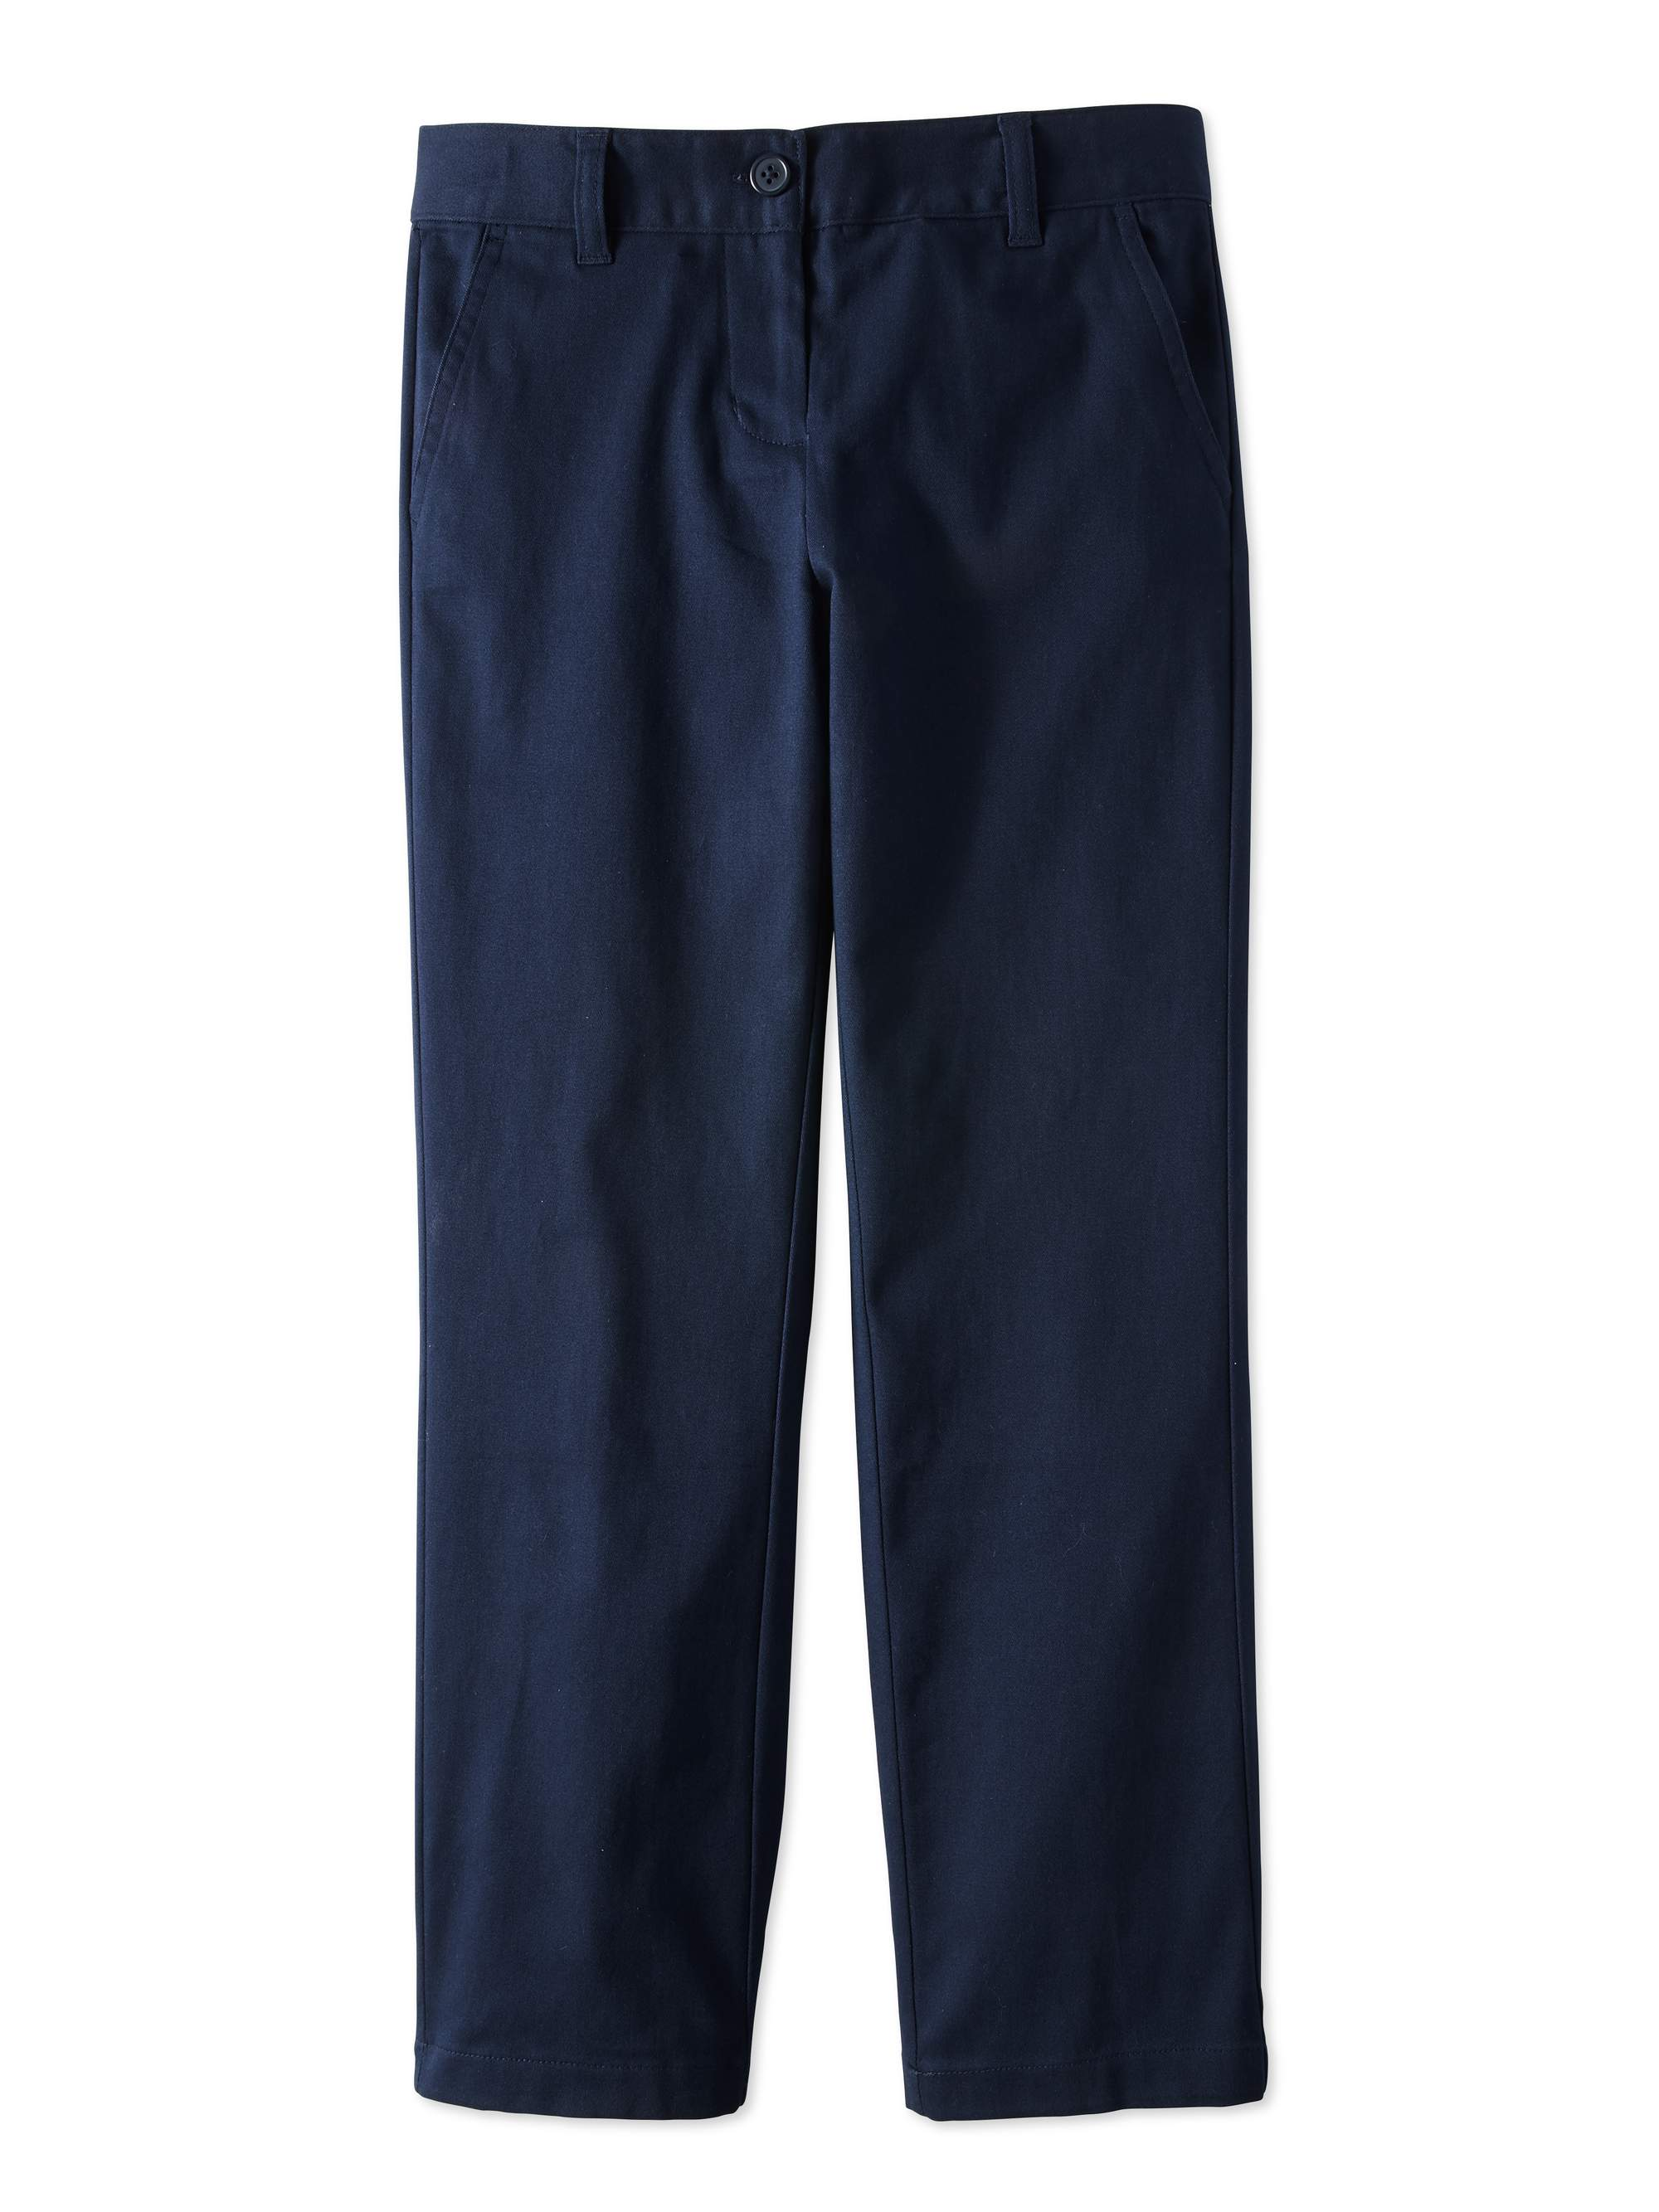 Girls Plus School Uniform Stretch Twill Straight Fit Pants